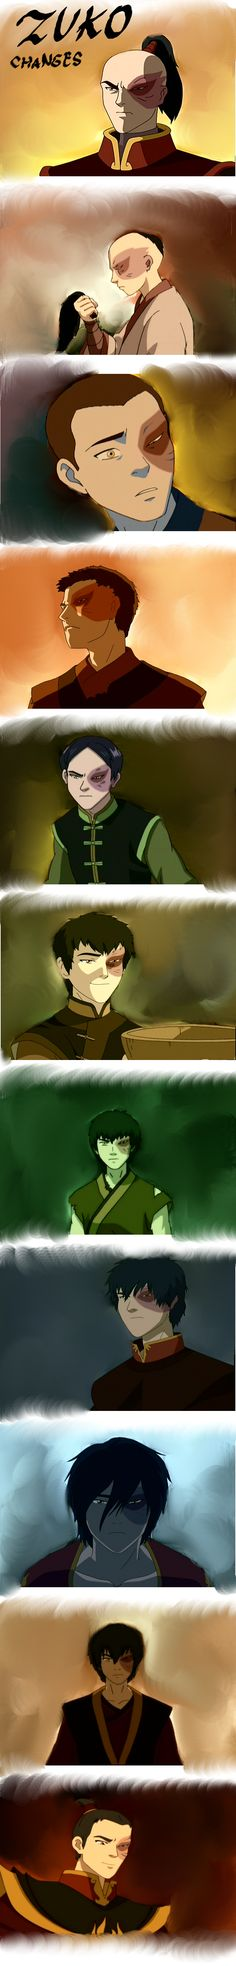 Zuko: Changes he has a lot of different hairstyles! I like his longer, shaggier hair best! He is Beautiful!